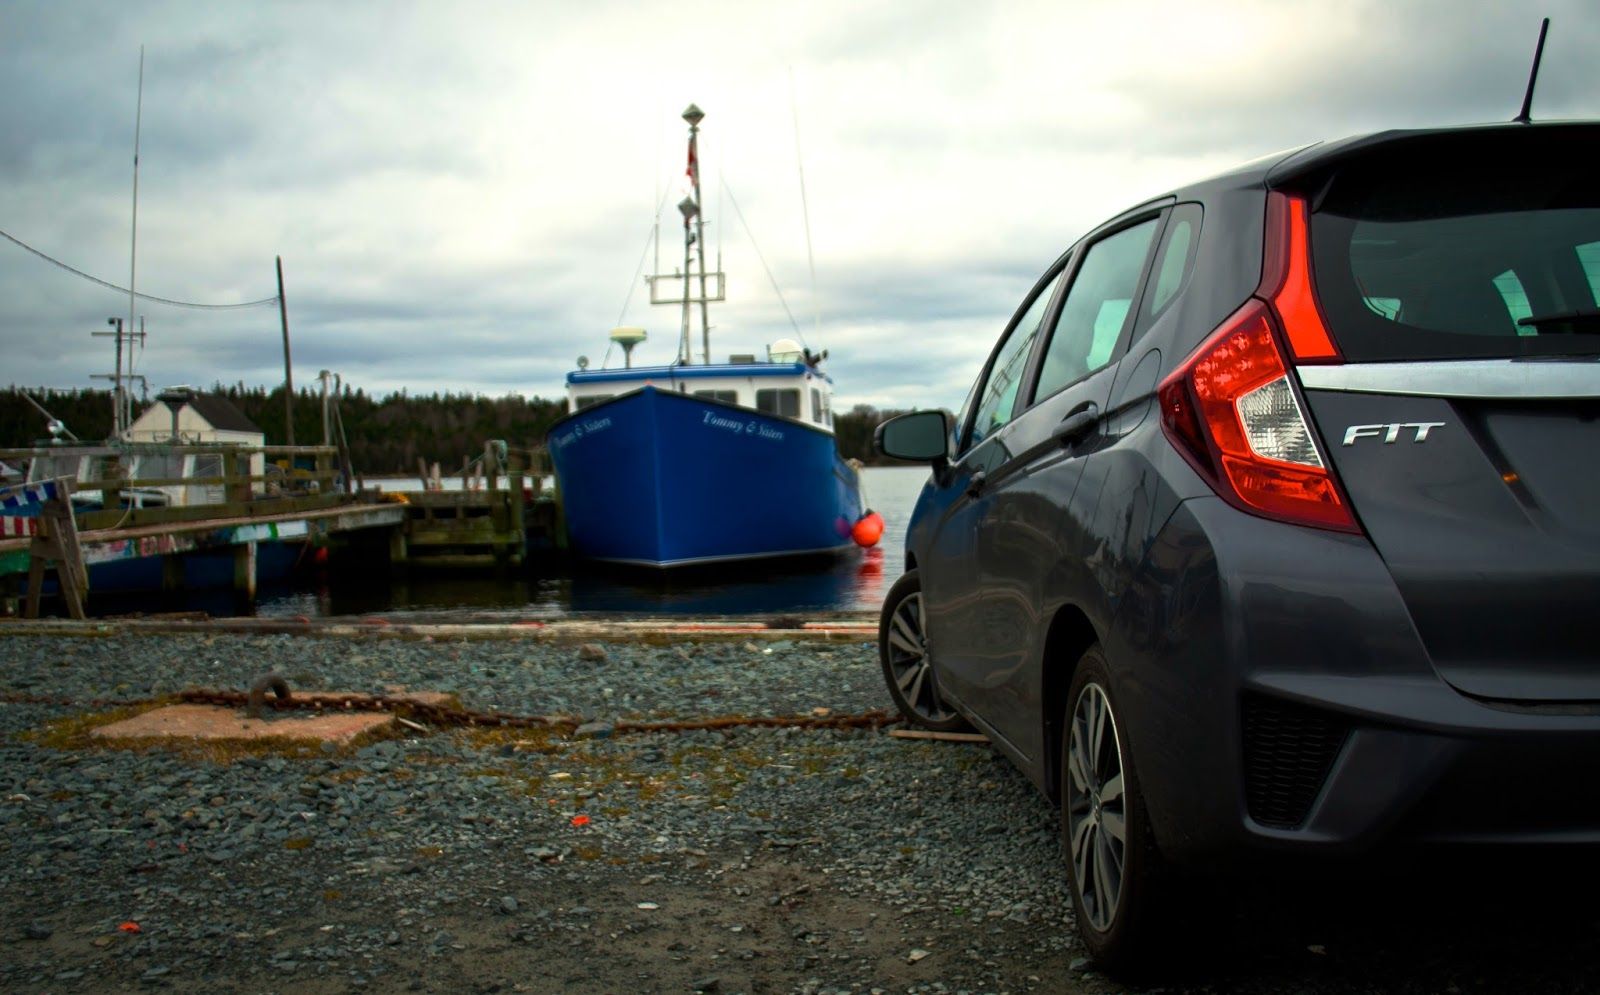 2015 Honda Fit fishing boat